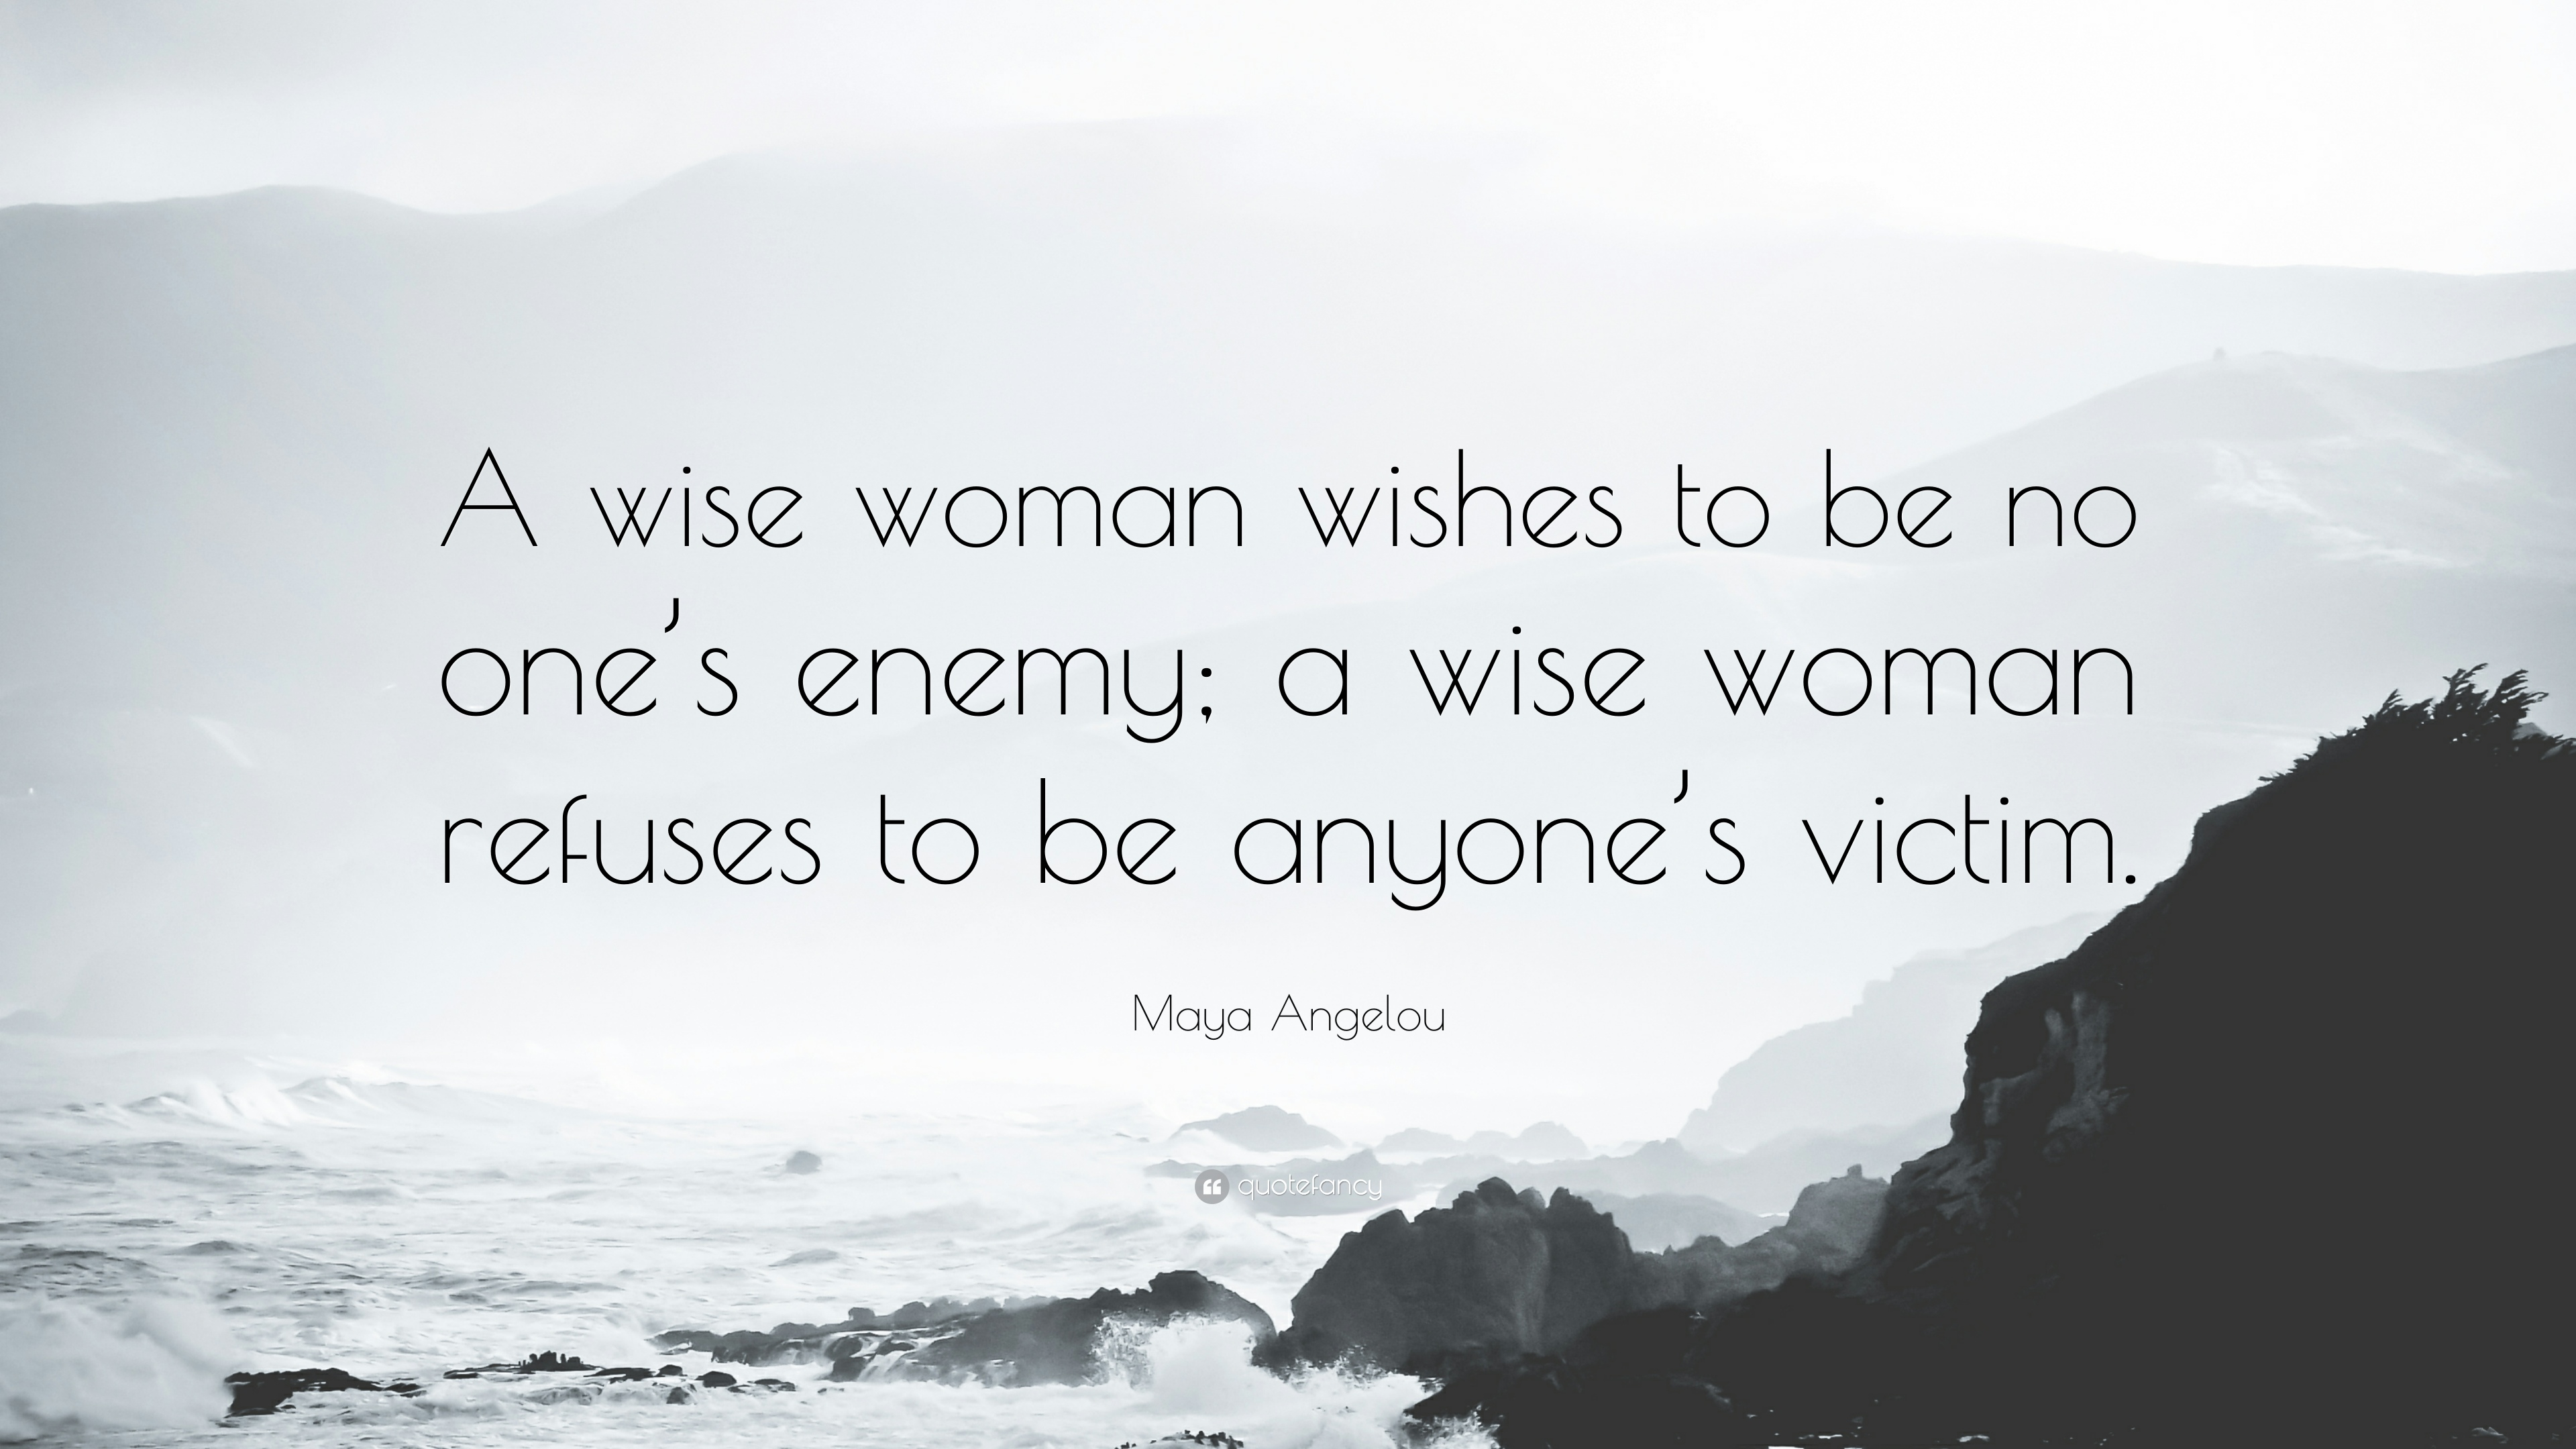 Image result for A wise woman wishes to be no one's enemy; a wise woman refuses to be anyone's victim.